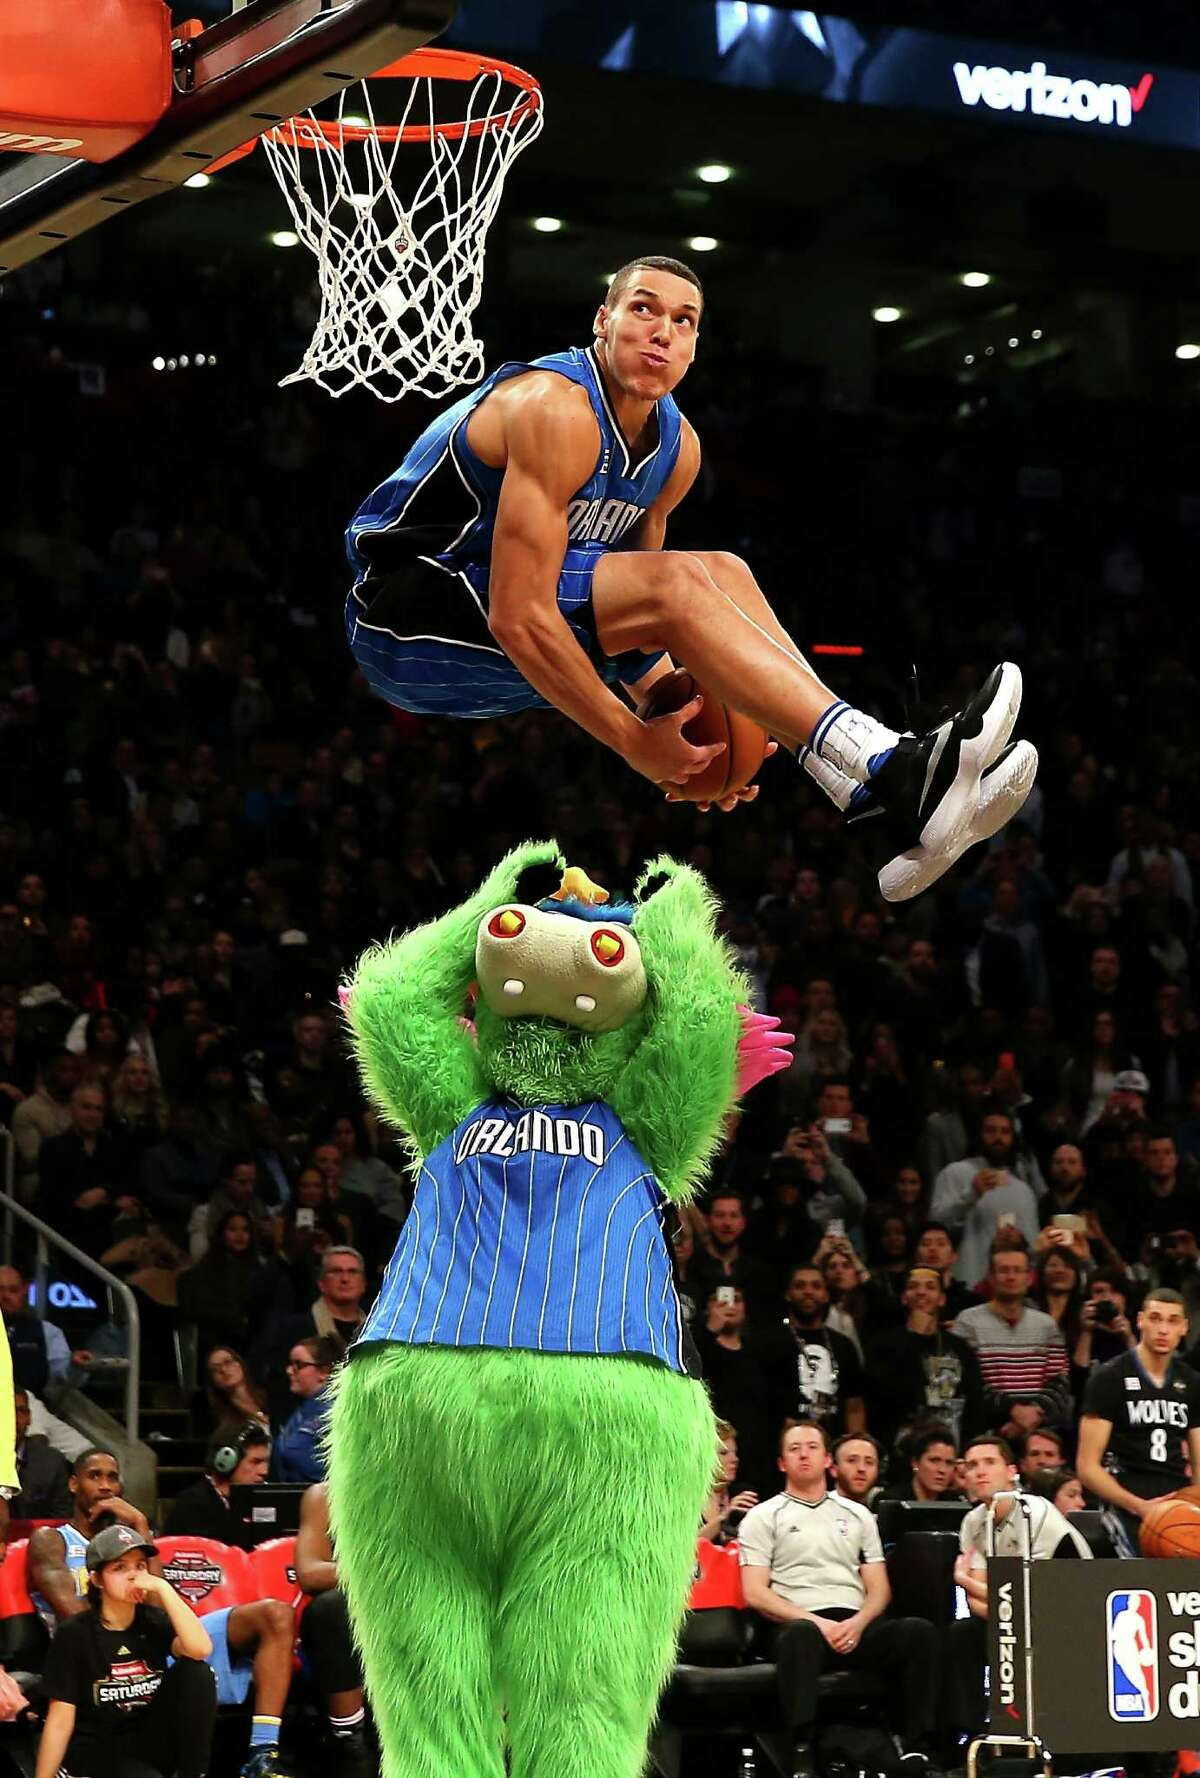 TORONTO, ON - FEBRUARY 13: Aaron Gordon of the Orlando Magic dunks over Stuff the Orlando Magic mascot in the Verizon Slam Dunk Contest during NBA All-Star Weekend 2016 at Air Canada Centre on February 13, 2016 in Toronto, Canada. NOTE TO USER: User expressly acknowledges and agrees that, by downloading and/or using this Photograph, user is consenting to the terms and conditions of the Getty Images License Agreement.